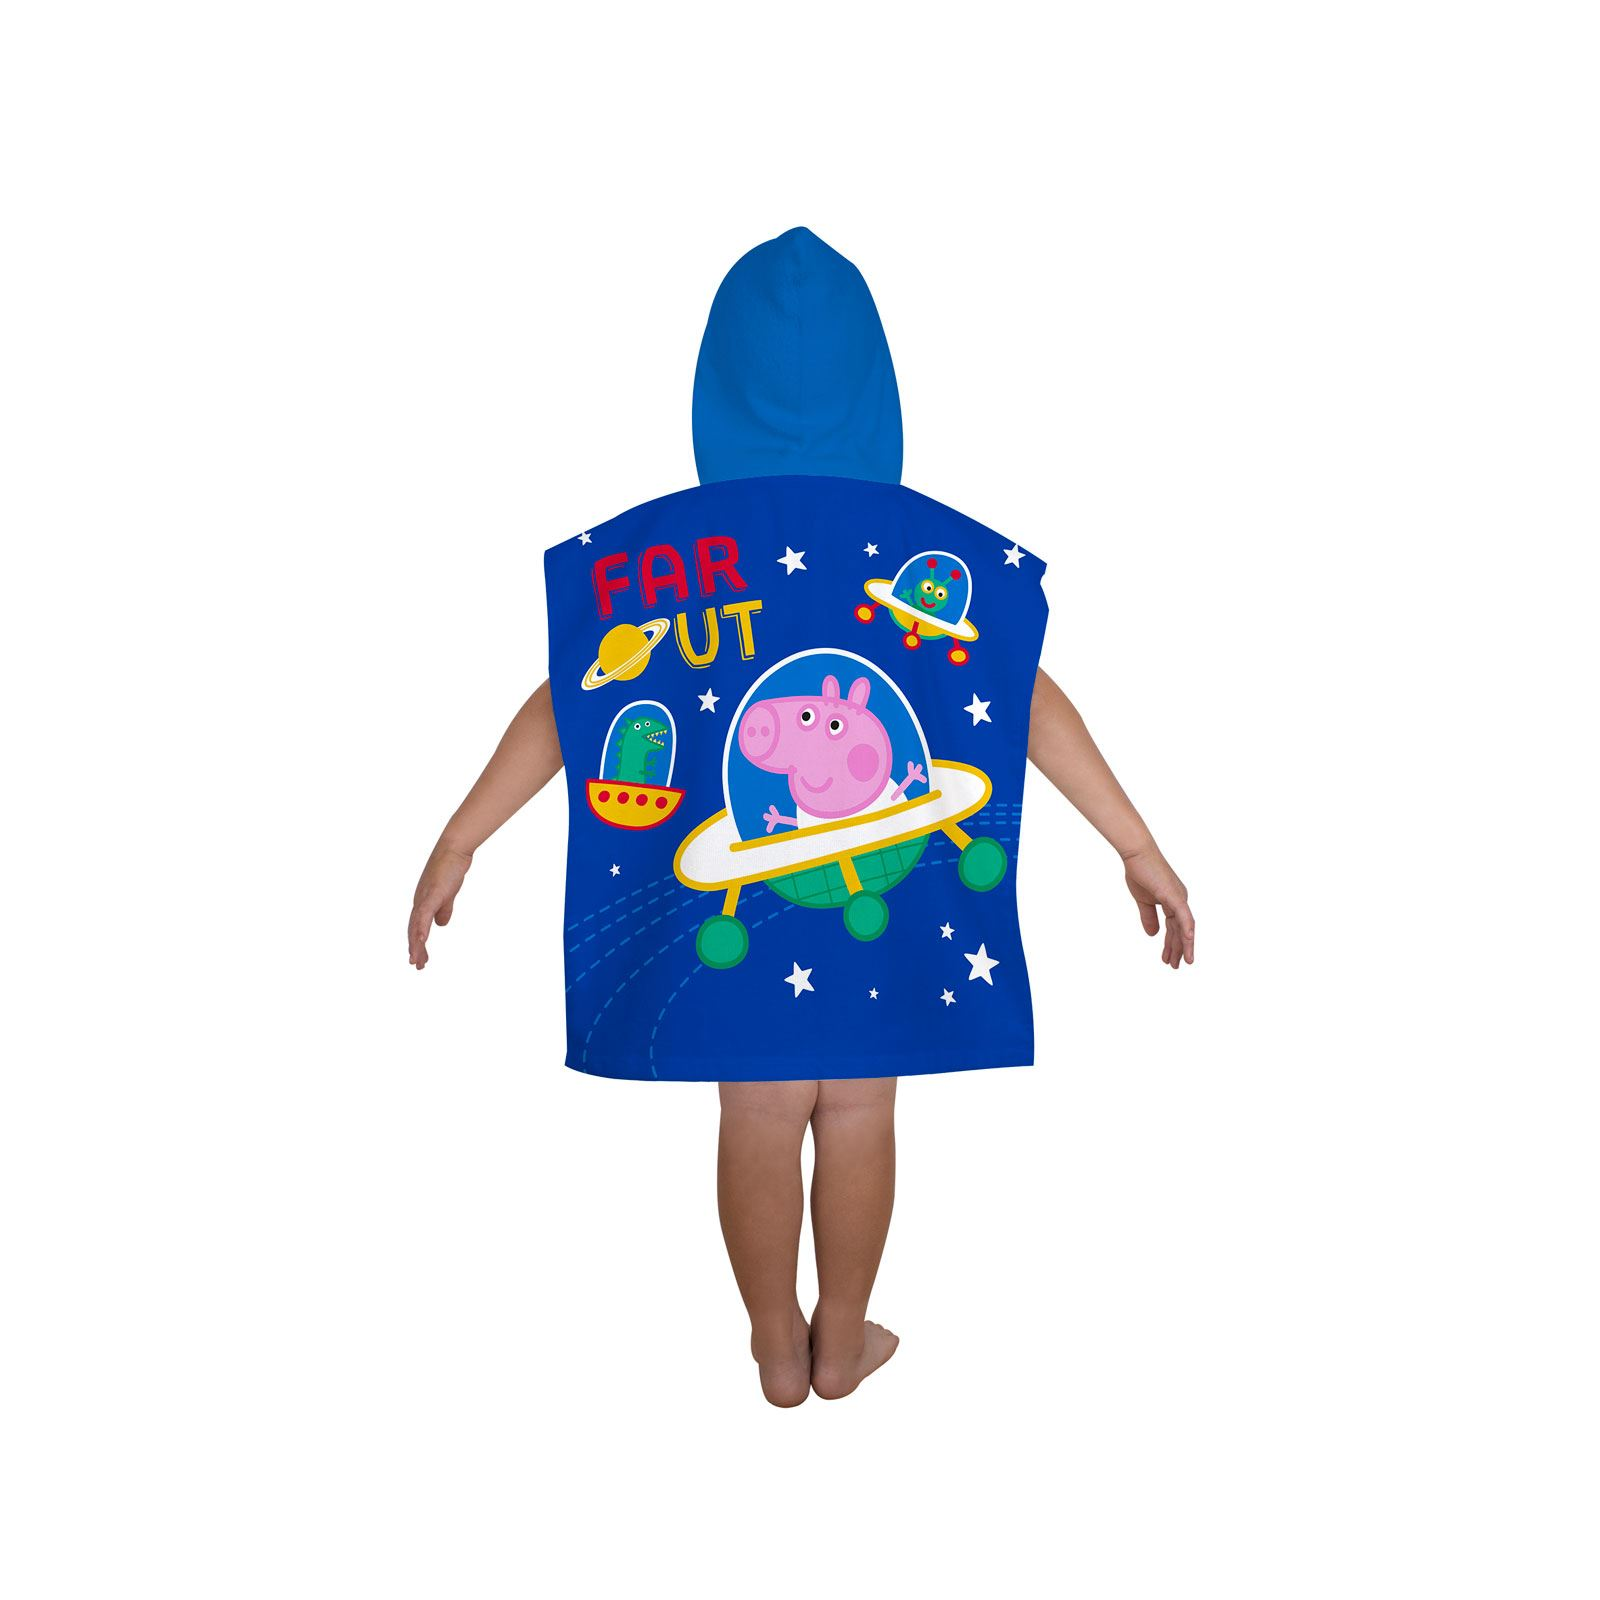 Peppa-Pig-George-100-Cotton-Beach-towels-amp-Hooded-Poncho-Boys-Girls-Kids miniature 3